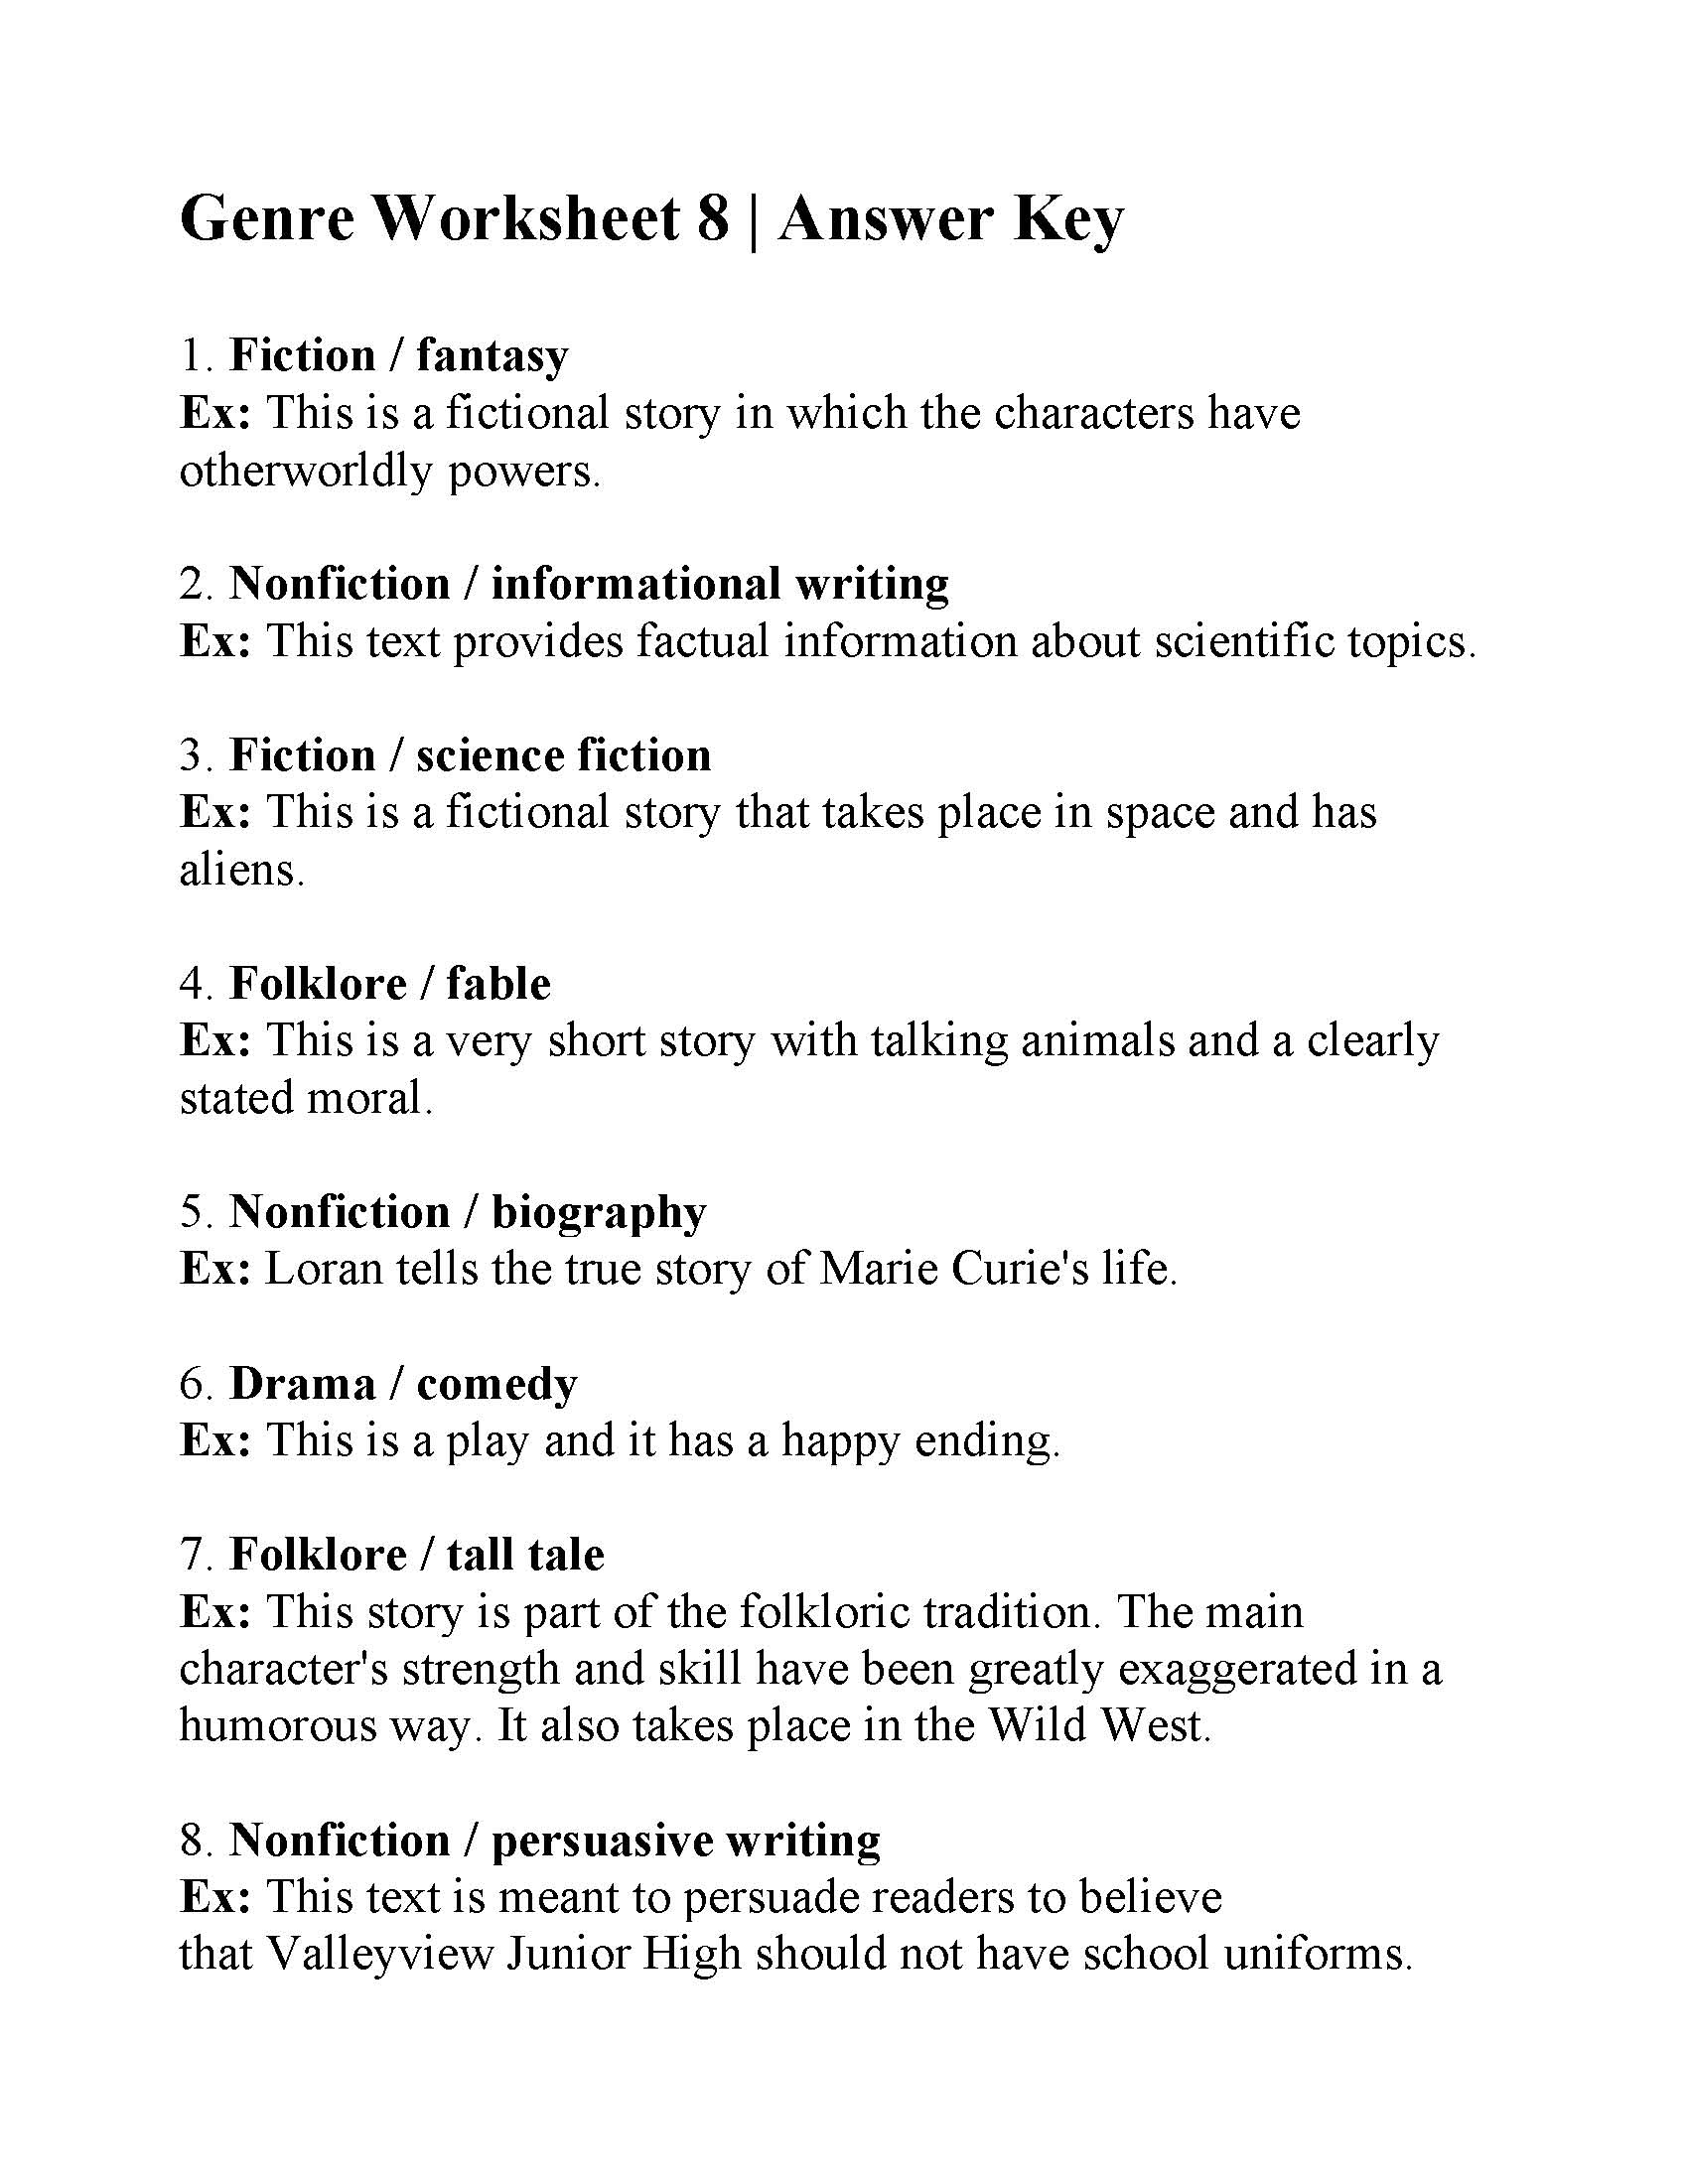 Genre Worksheet 8